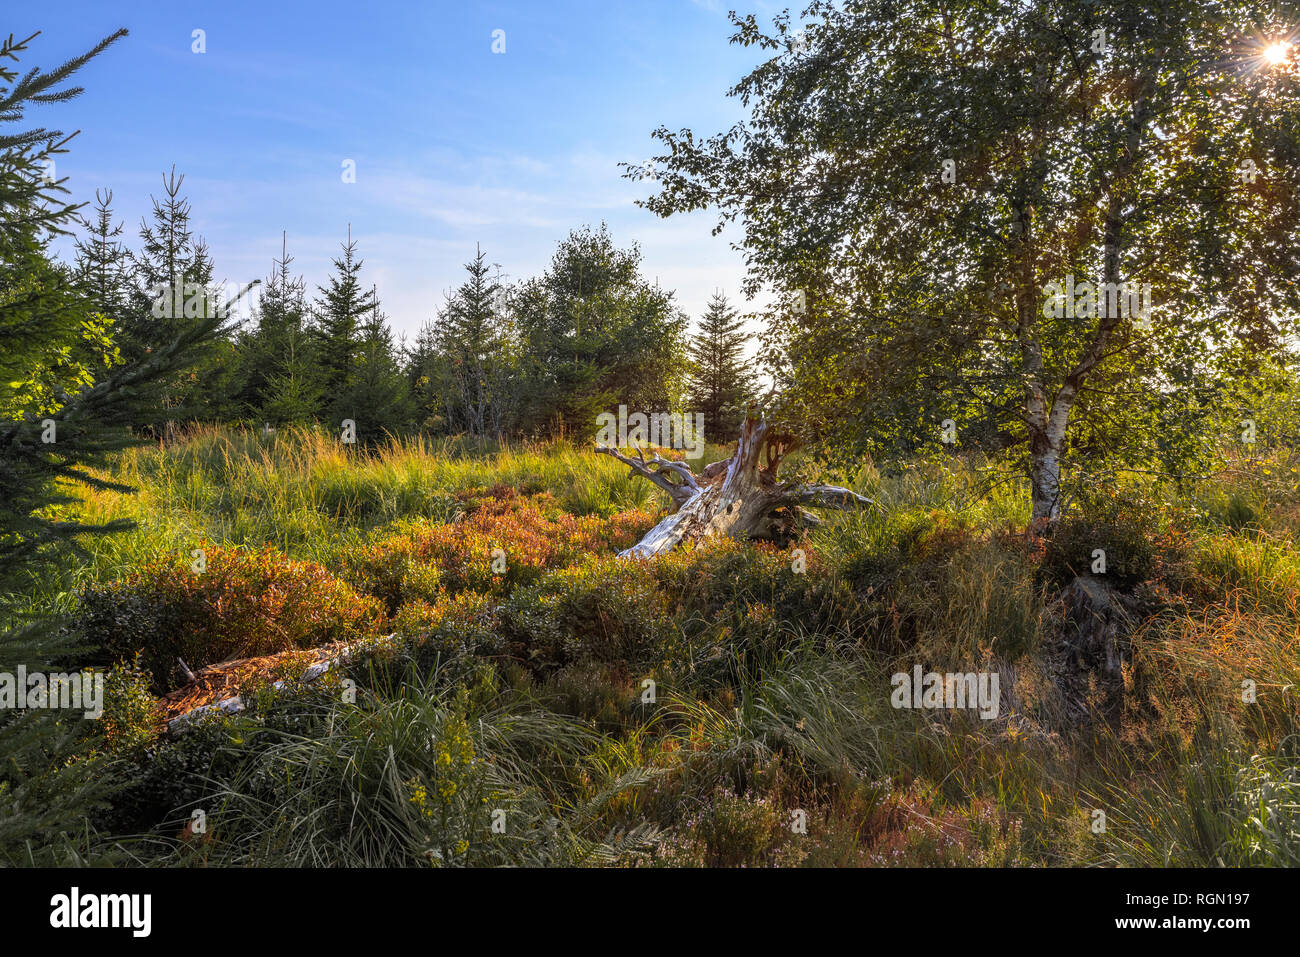 landscape of deadwood and recreation of nature in the Northern Black Forest, Germany, nature trail Lotharpfad, conservation area and nature park Stock Photo